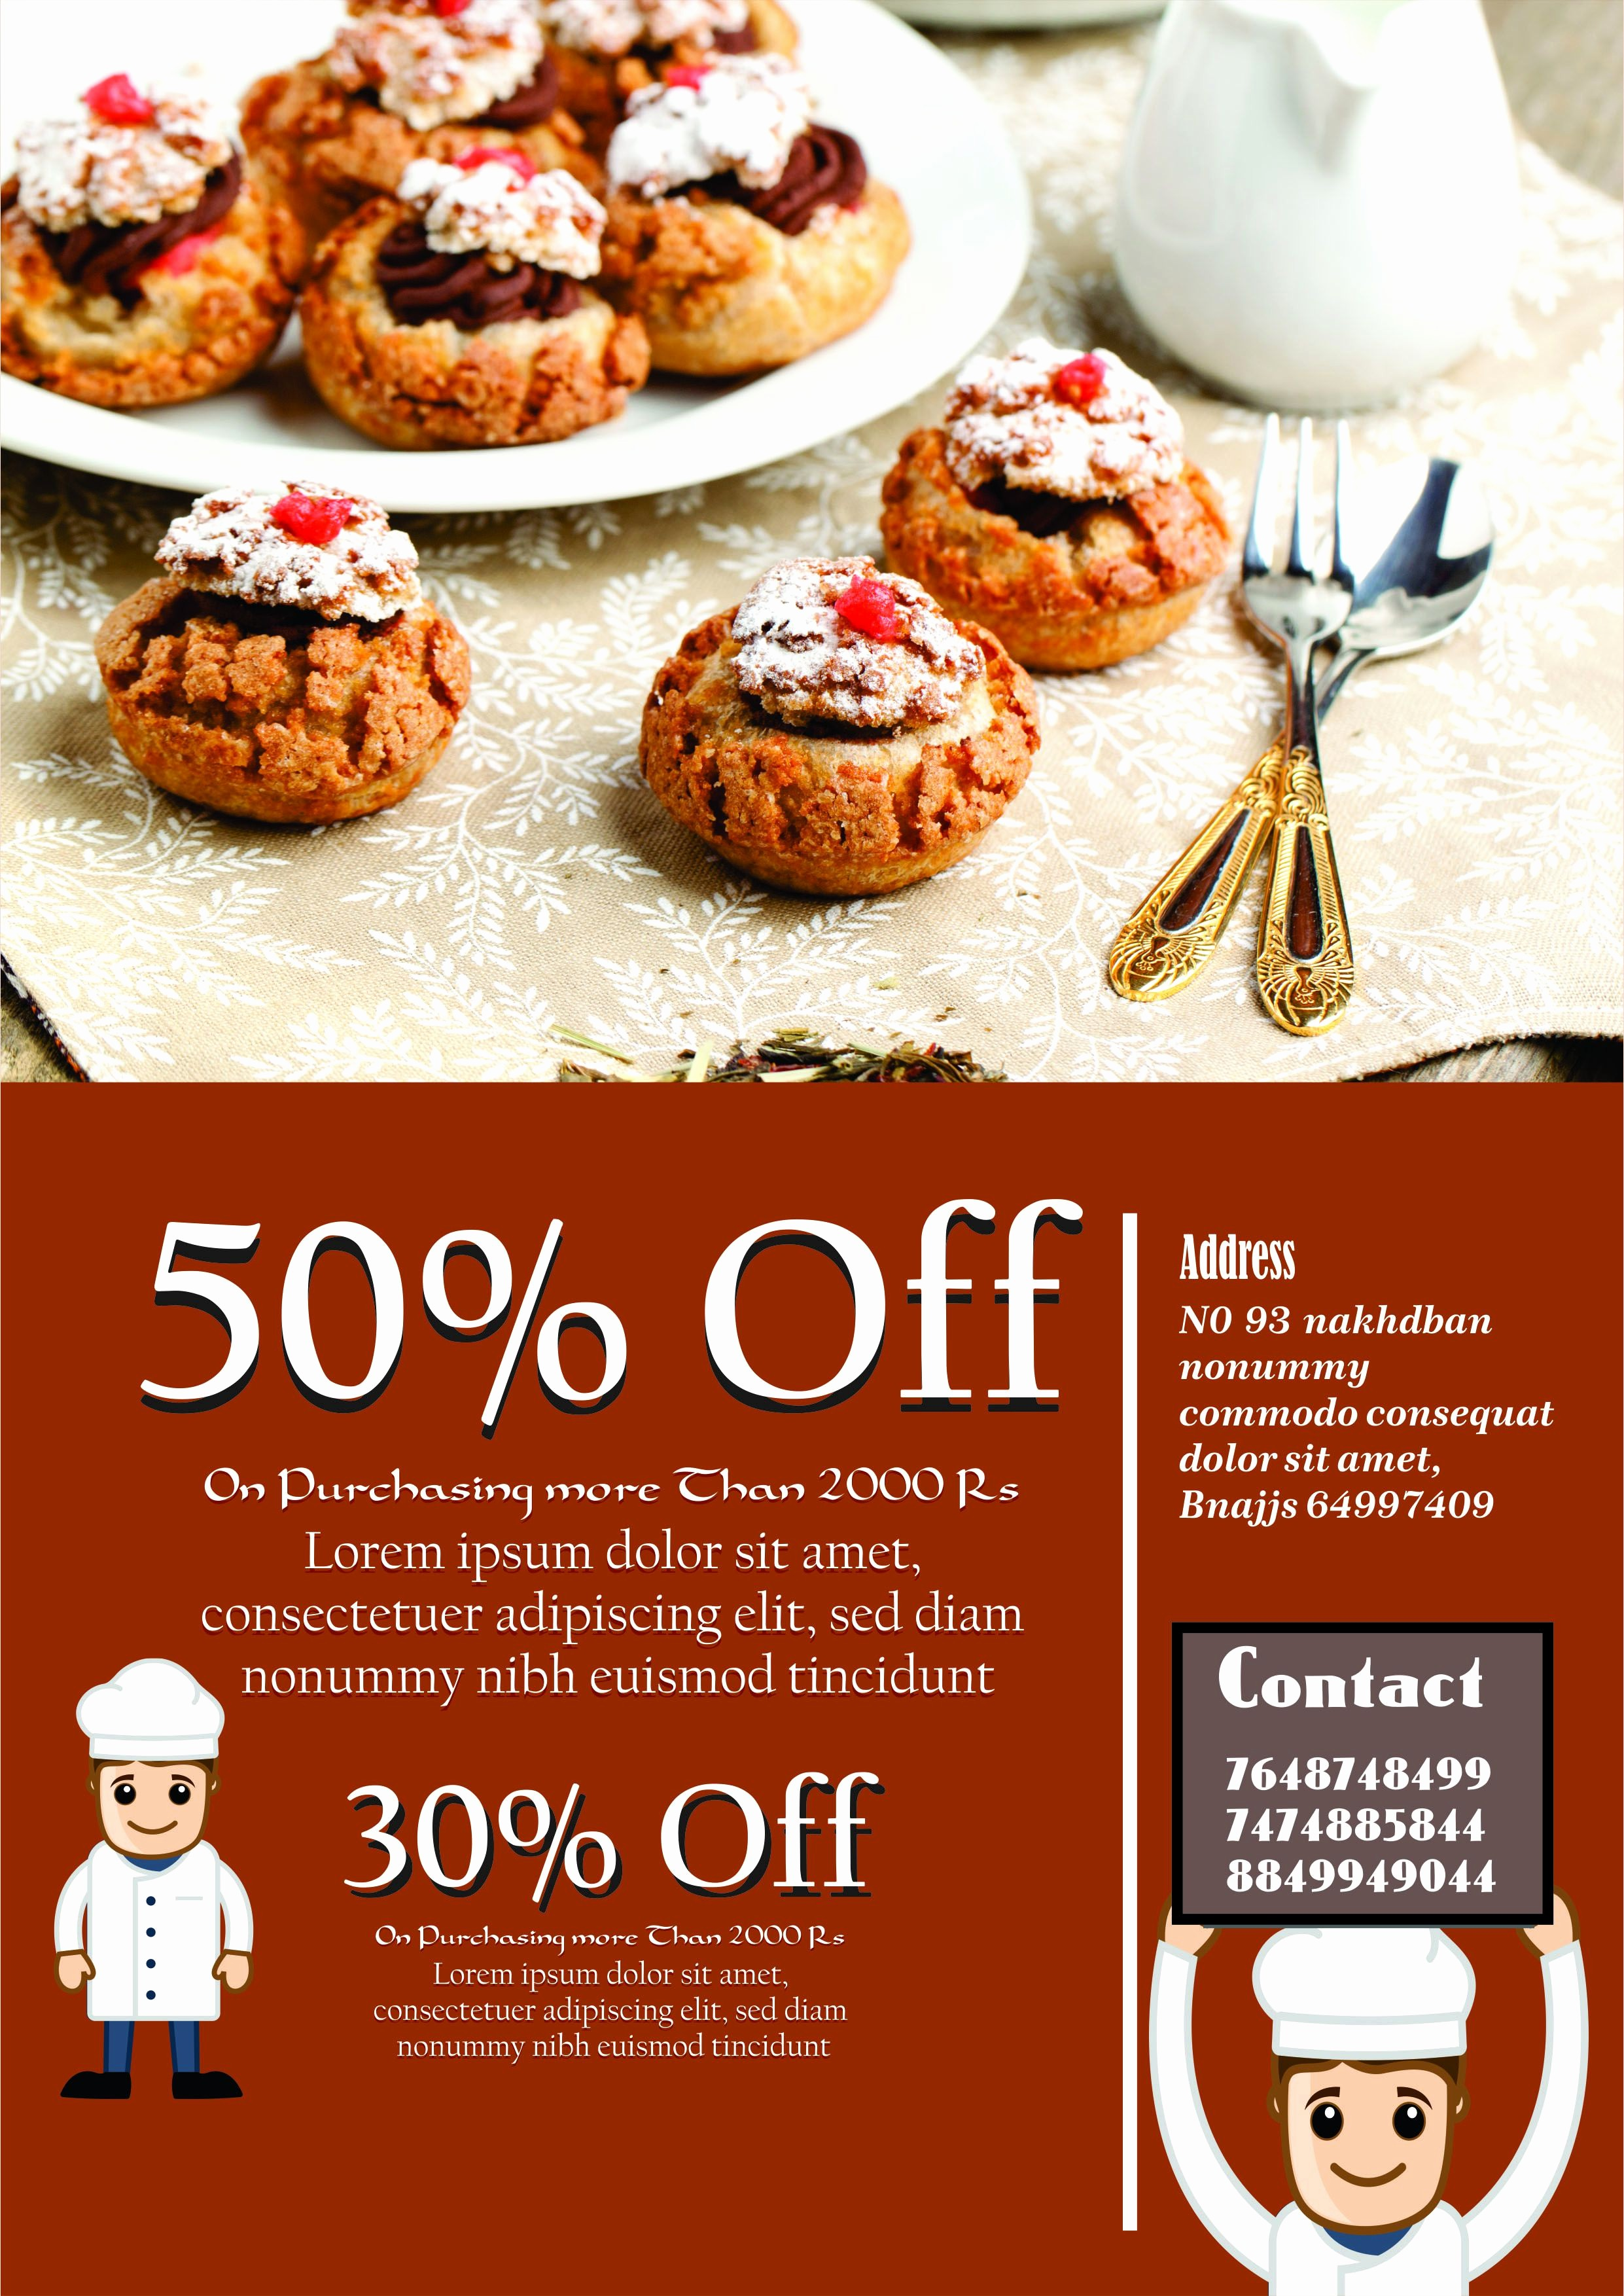 Bake Sale Flyer Template Word New Engaging Free Bake Sale Flyer Templates for Fundraising